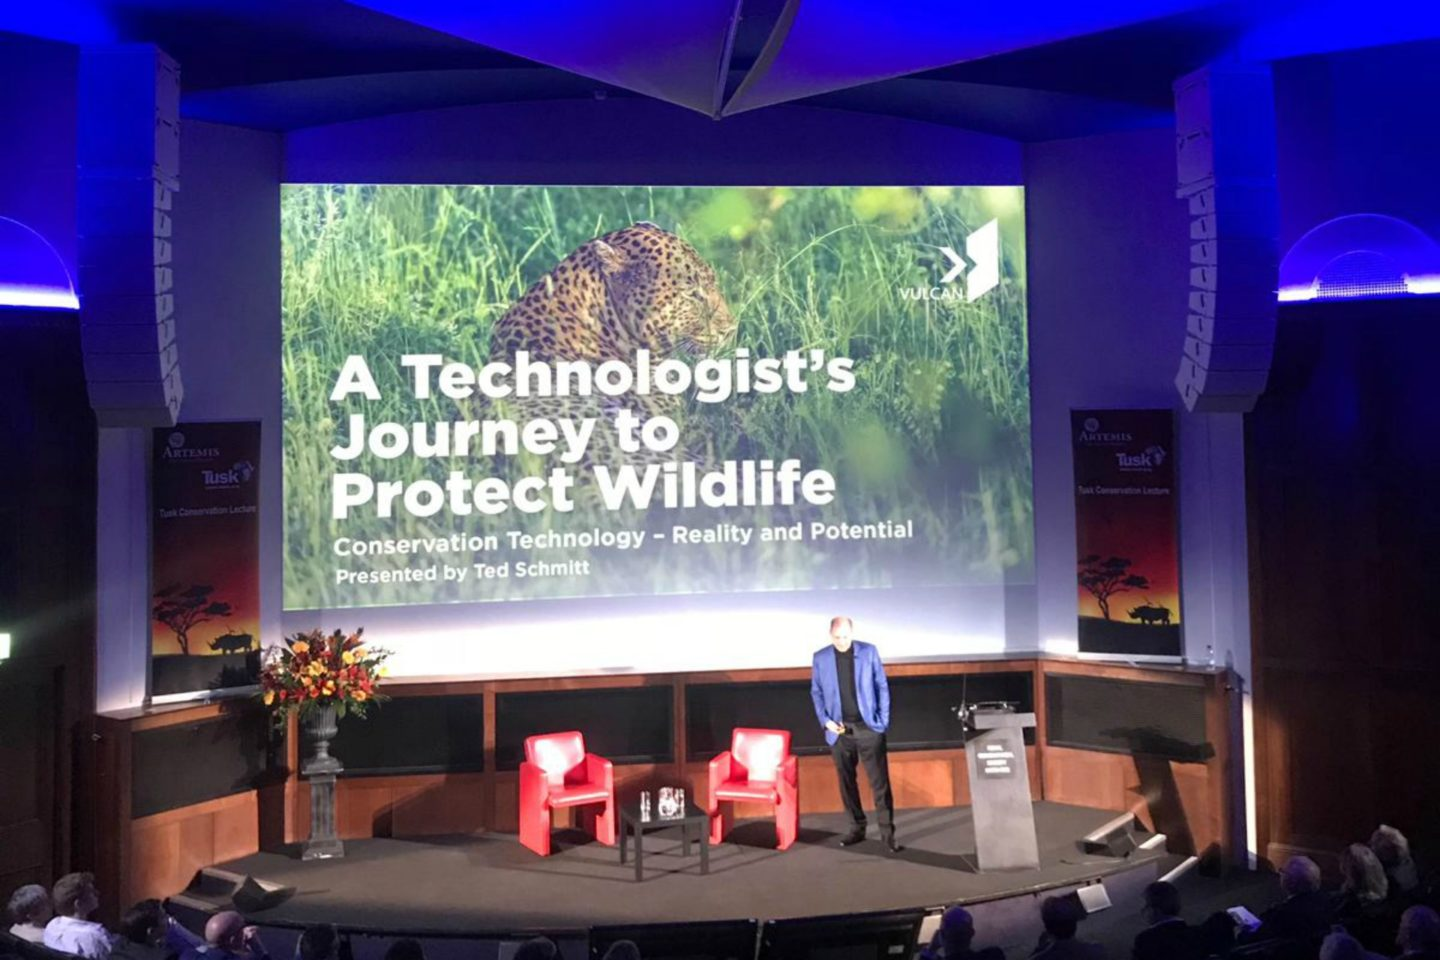 Can we save wildlife with technology?